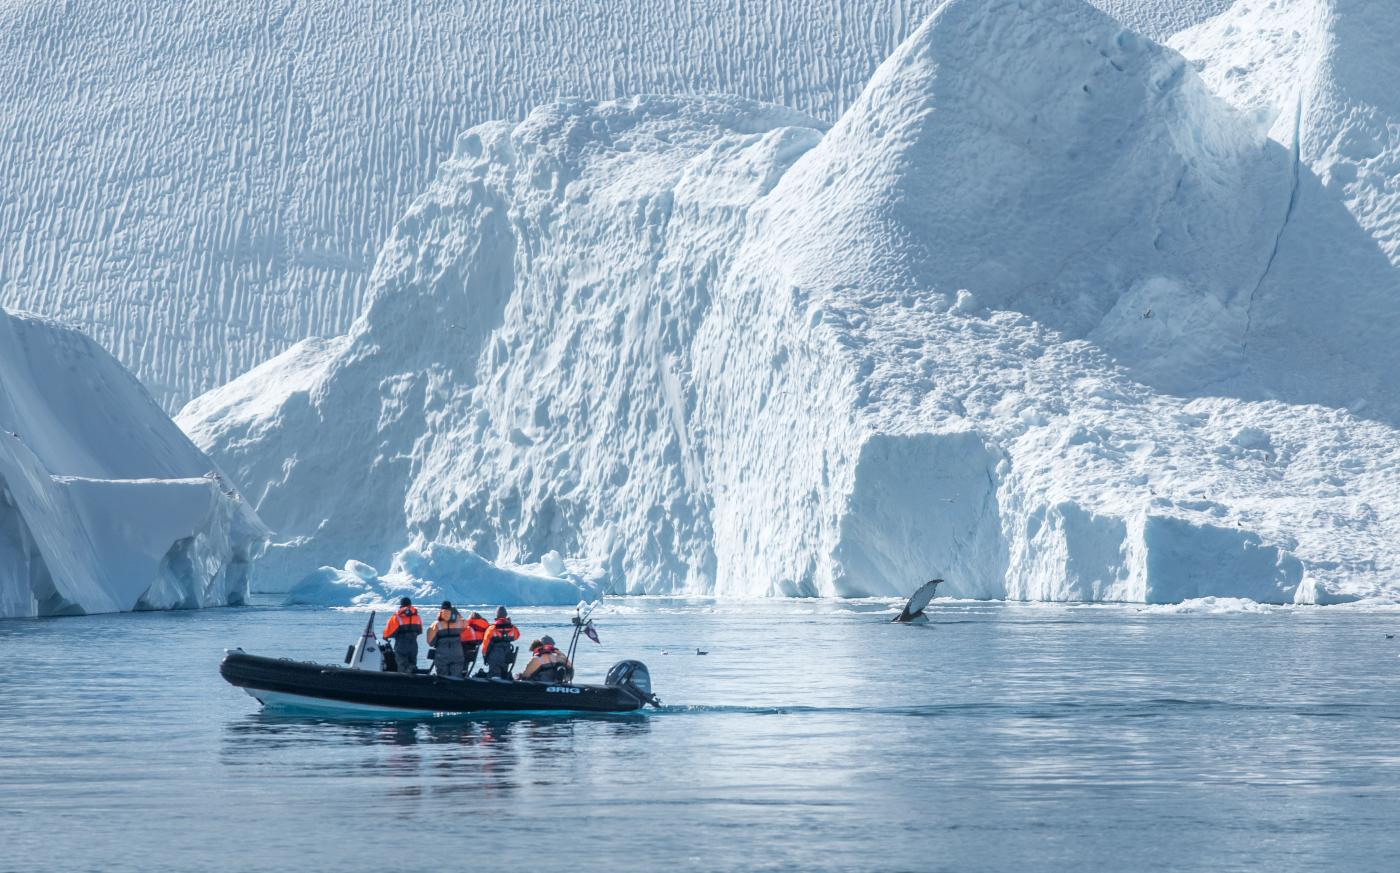 Whale watching. Photo by Ilulissat Adventure